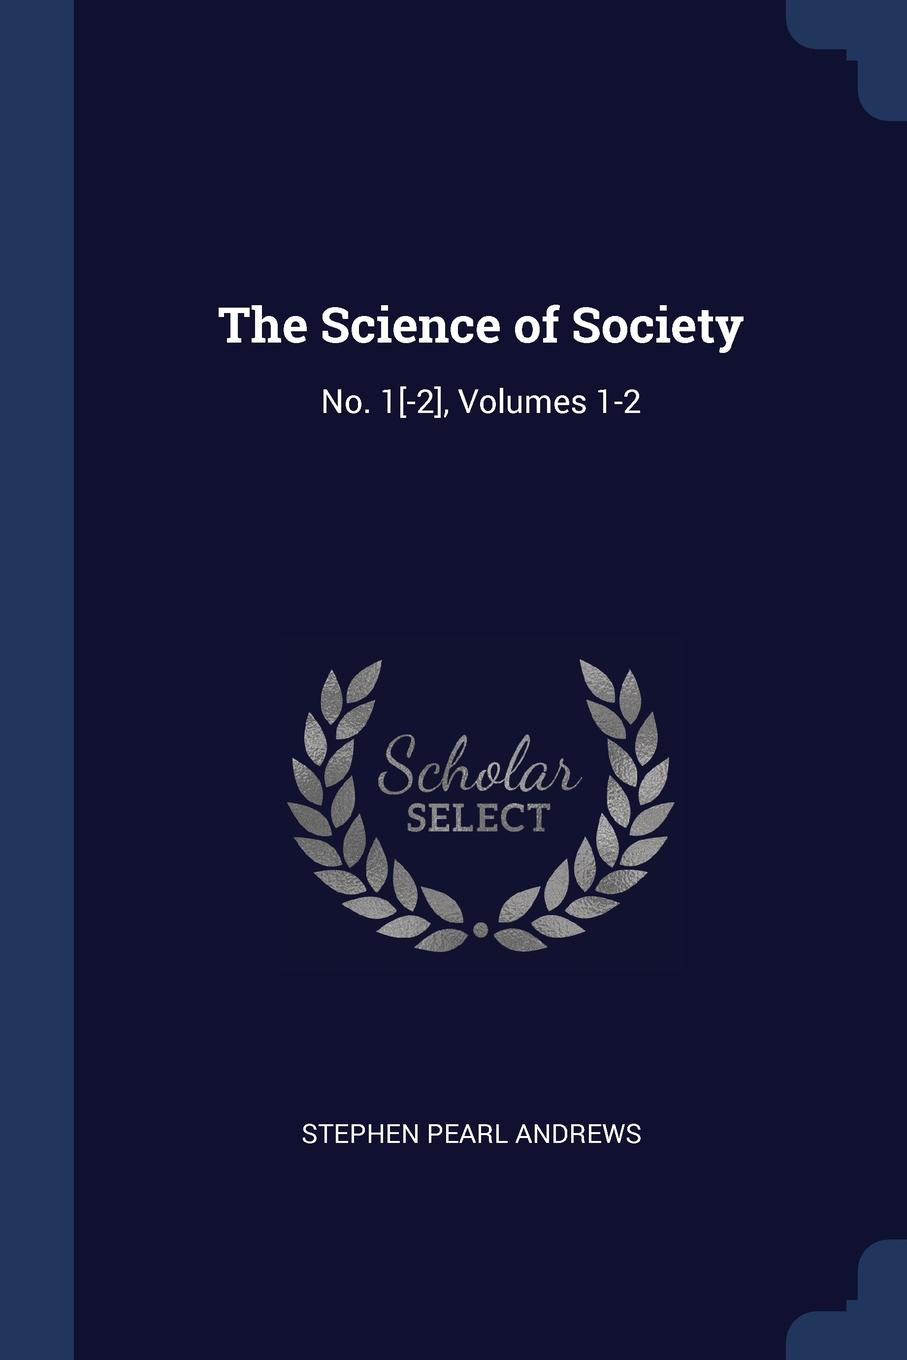 Stephen Pearl Andrews The Science of Society. No. 1.-2., Volumes 1-2